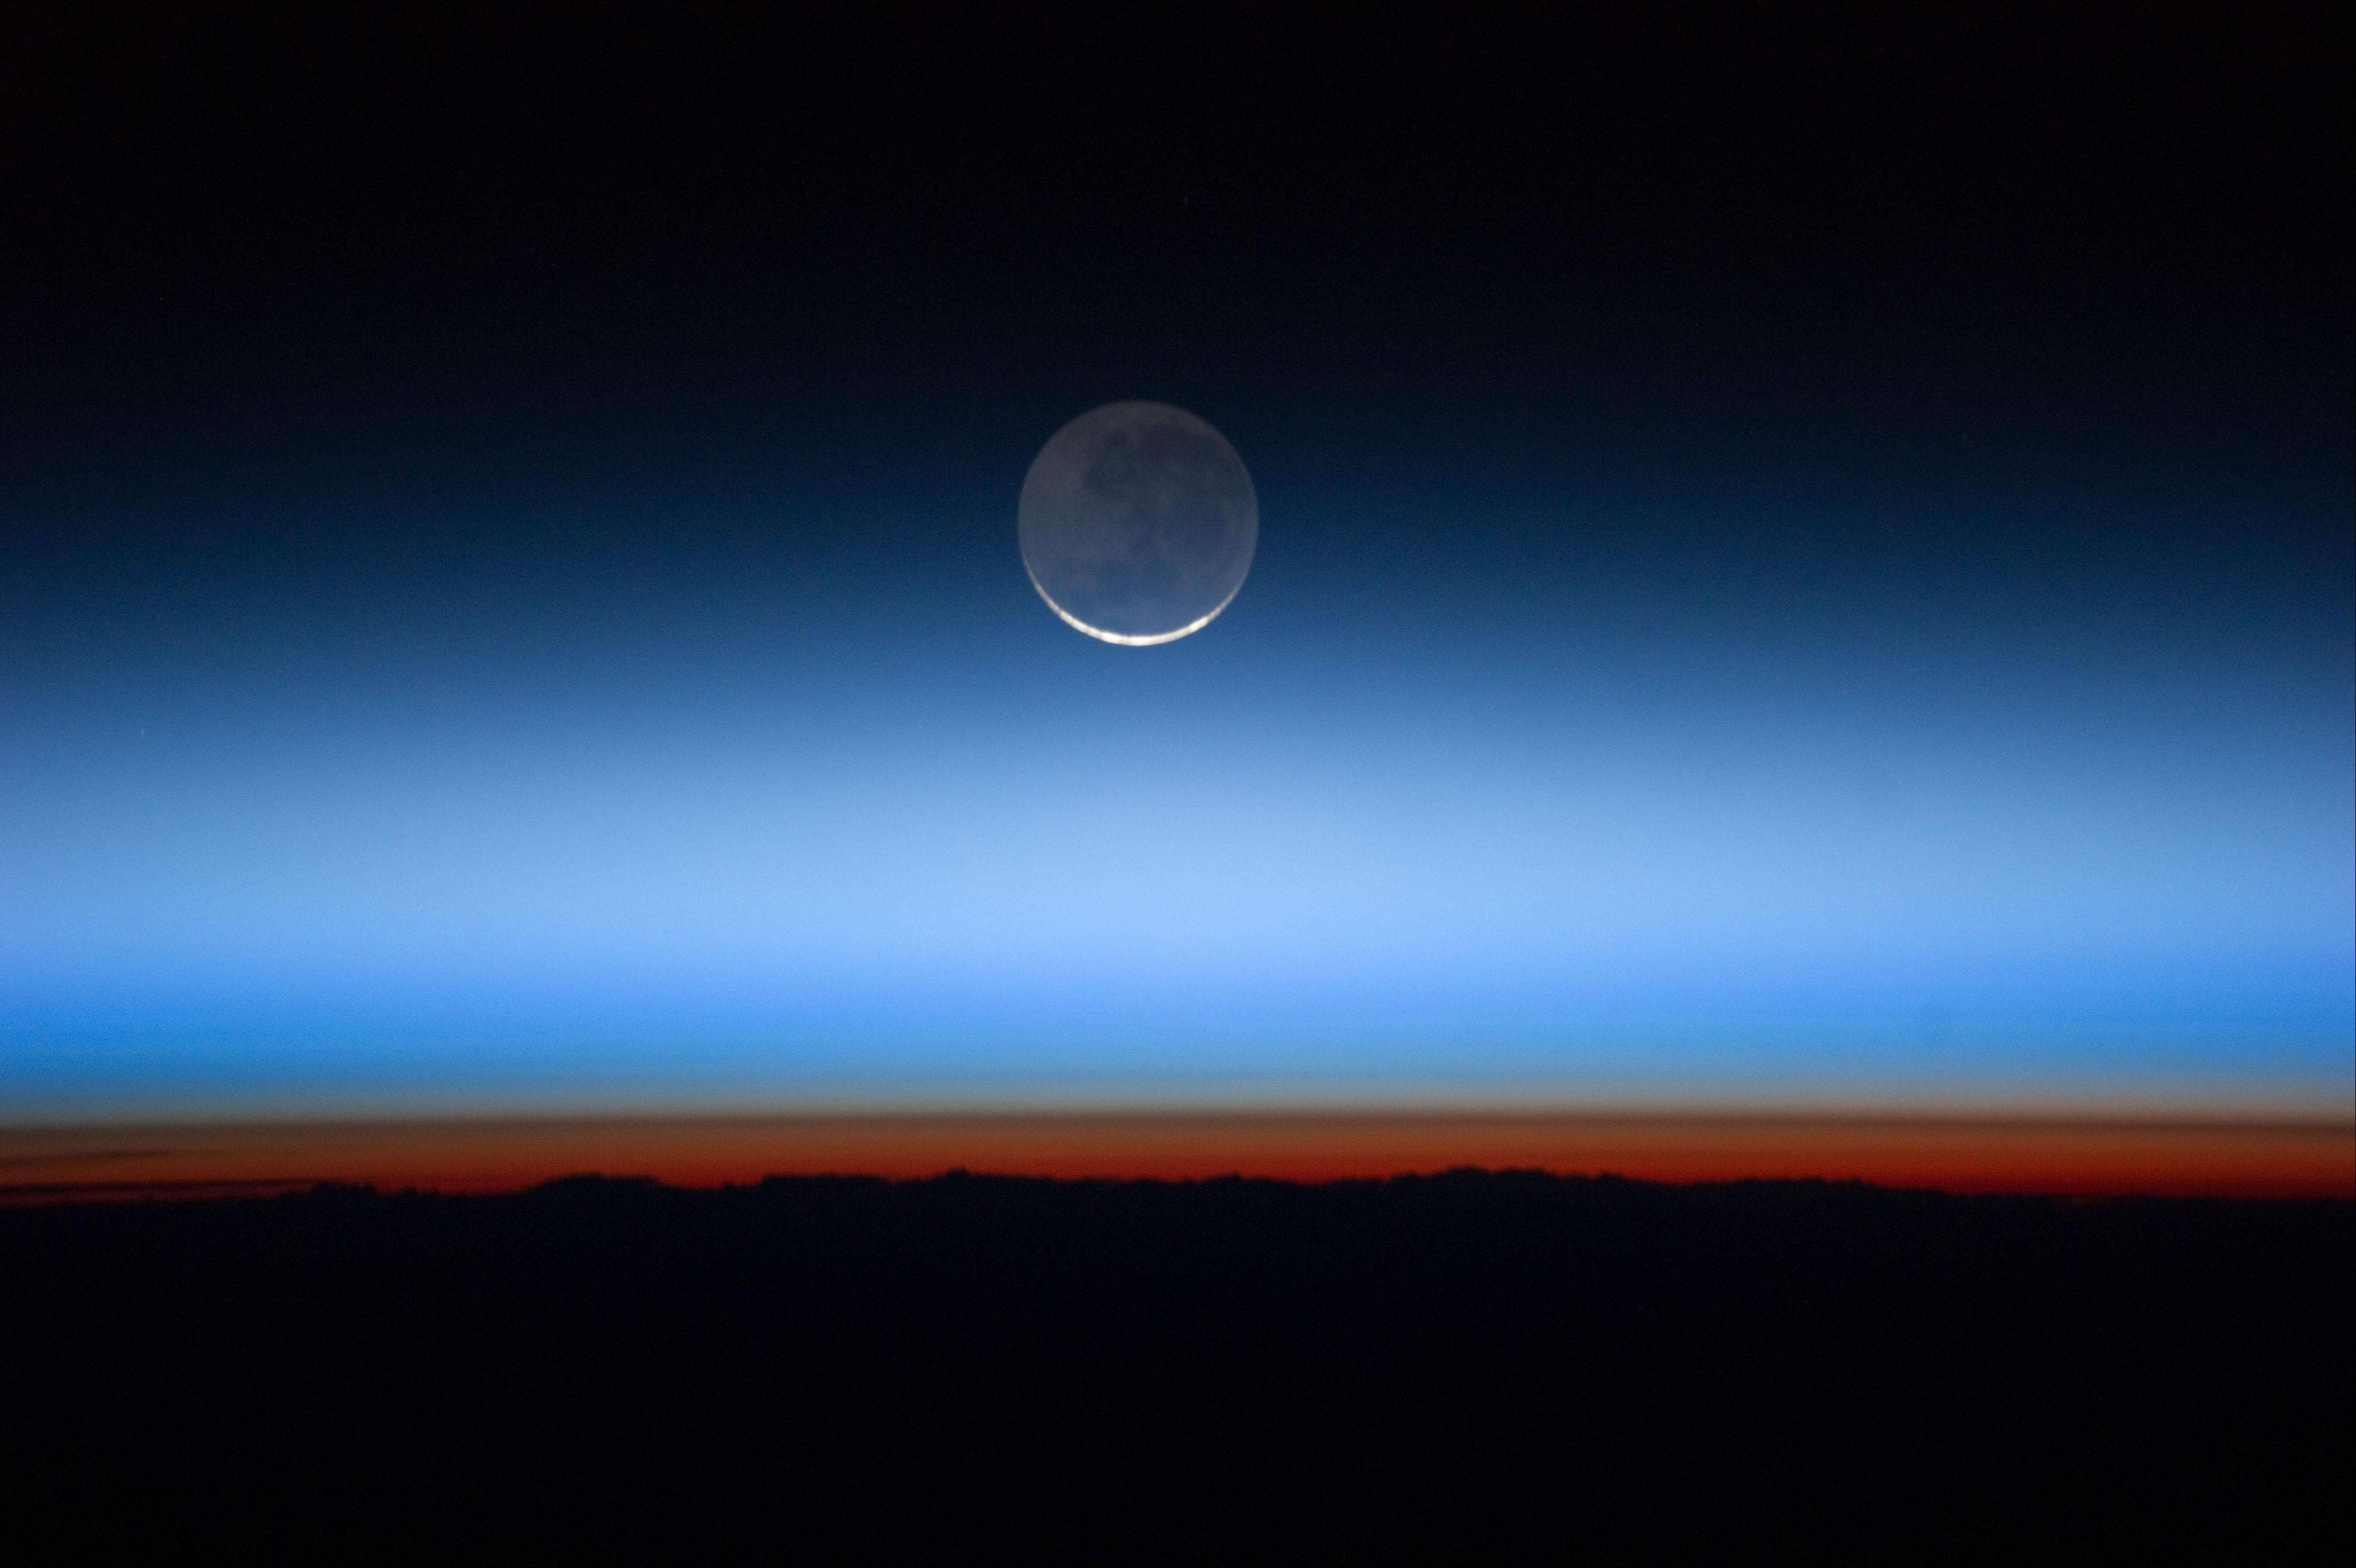 This undated image made available by NASA and photographed by the Expedition 28 crew aboard the International Space Station, shows the moon, at center with the limb of Earth near the bottom transitioning into the orange-colored troposphere, the lowest and most dense portion of the Earth's atmosphere.